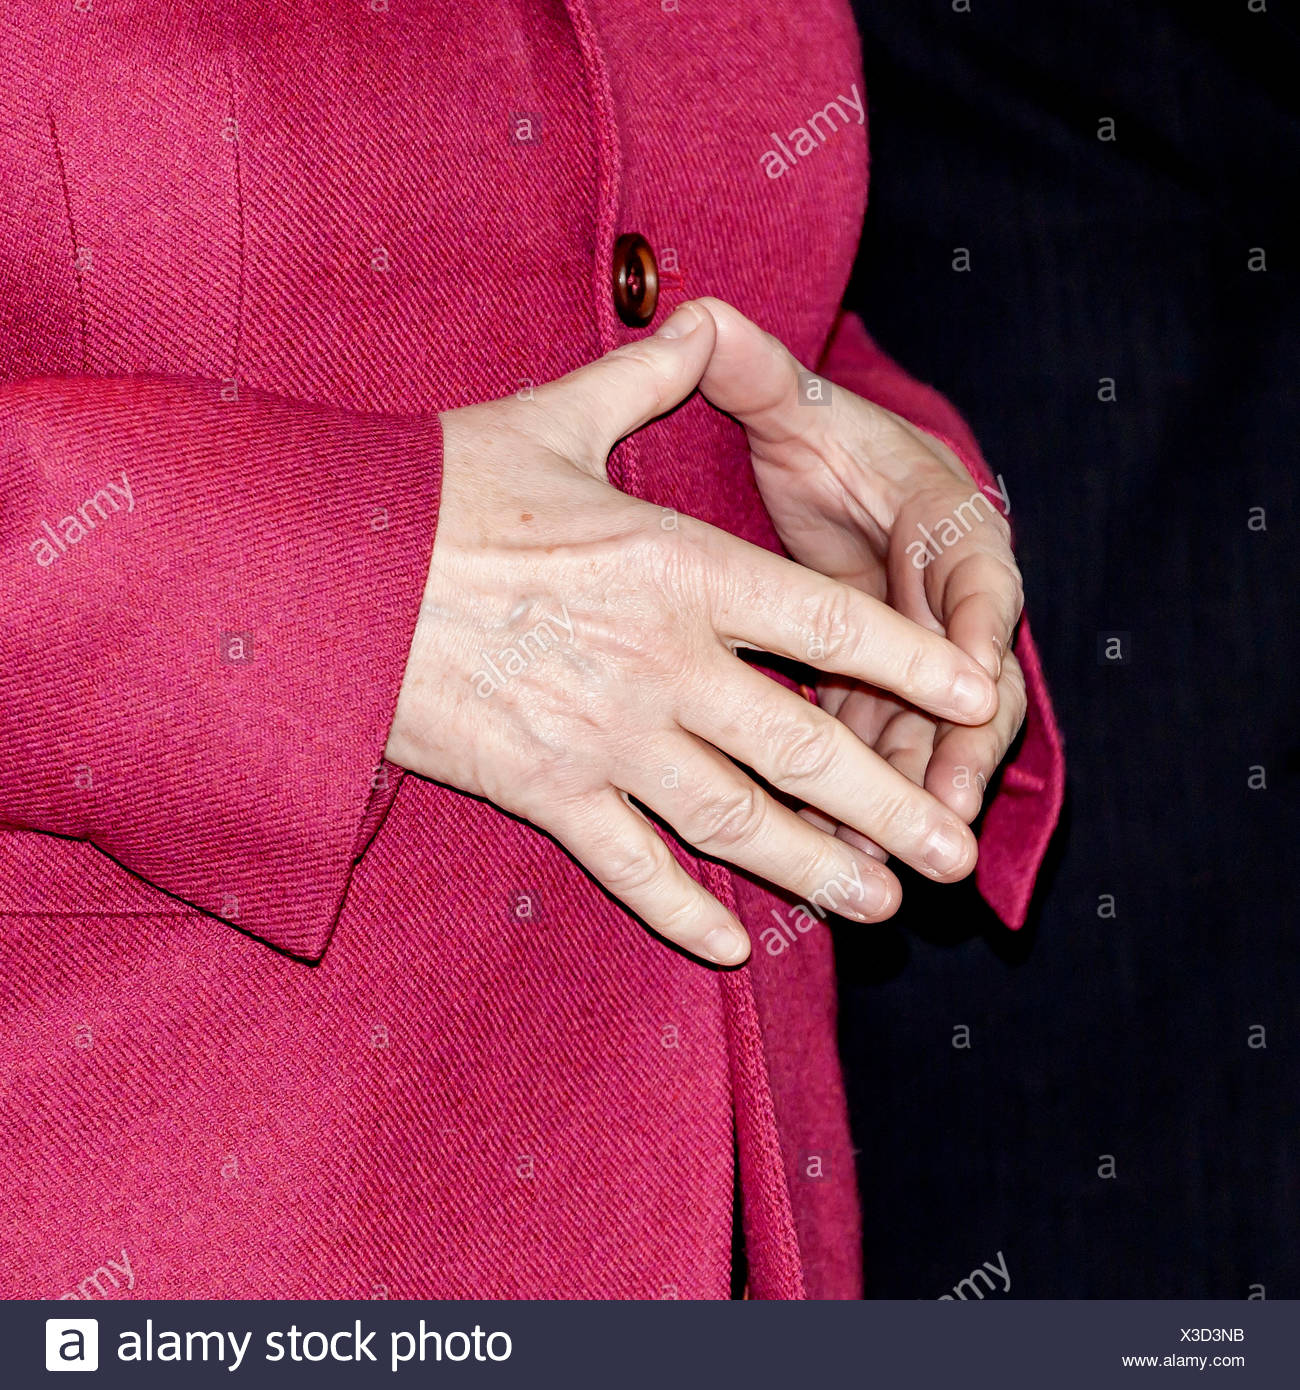 Typical hand position of Angela Merkel, Chancellor of Germany, Germany - Stock Image